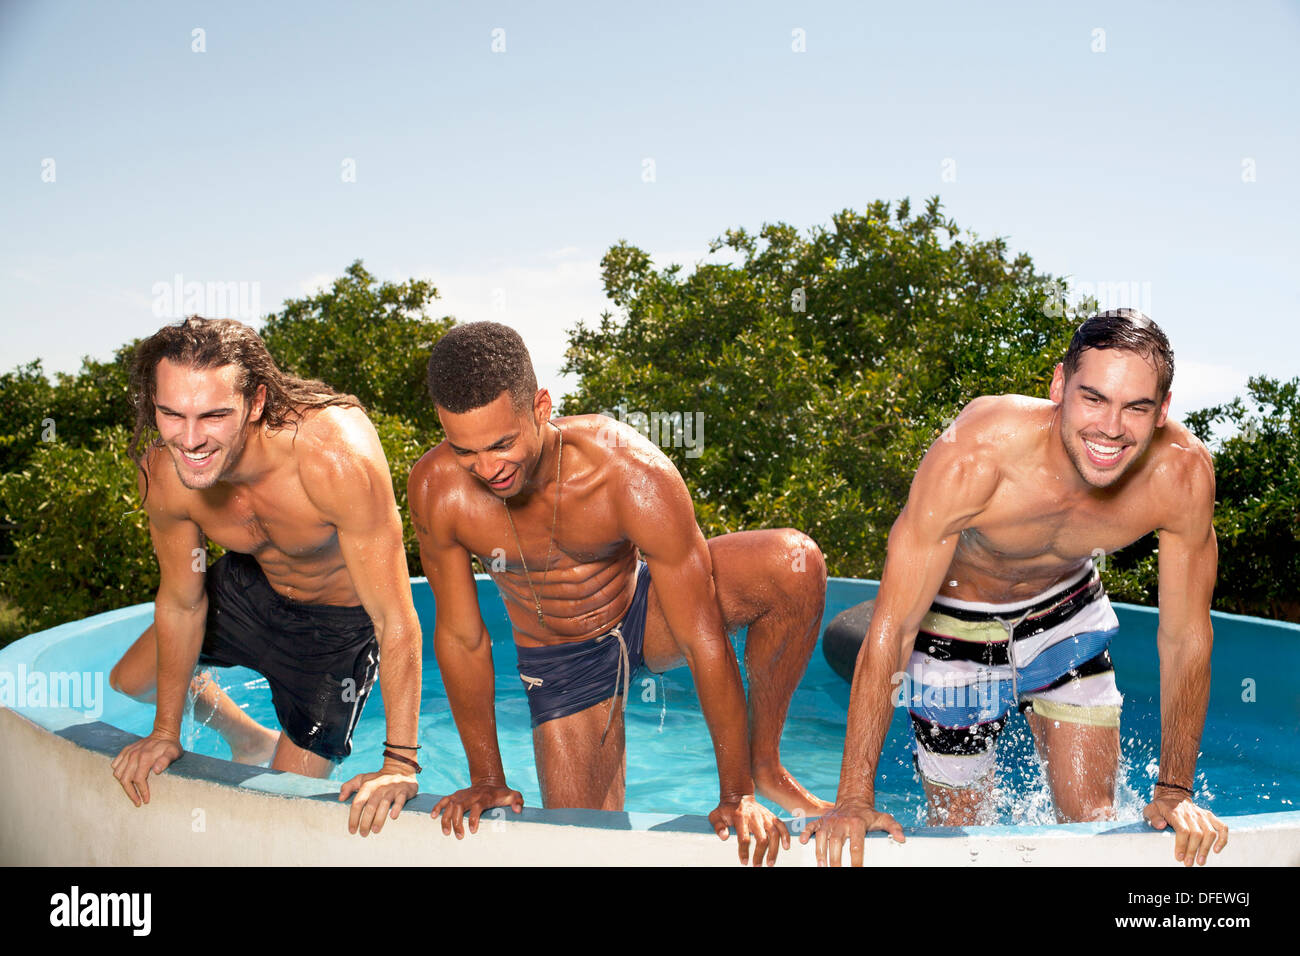 Men climbing out of swimming pool - Stock Image